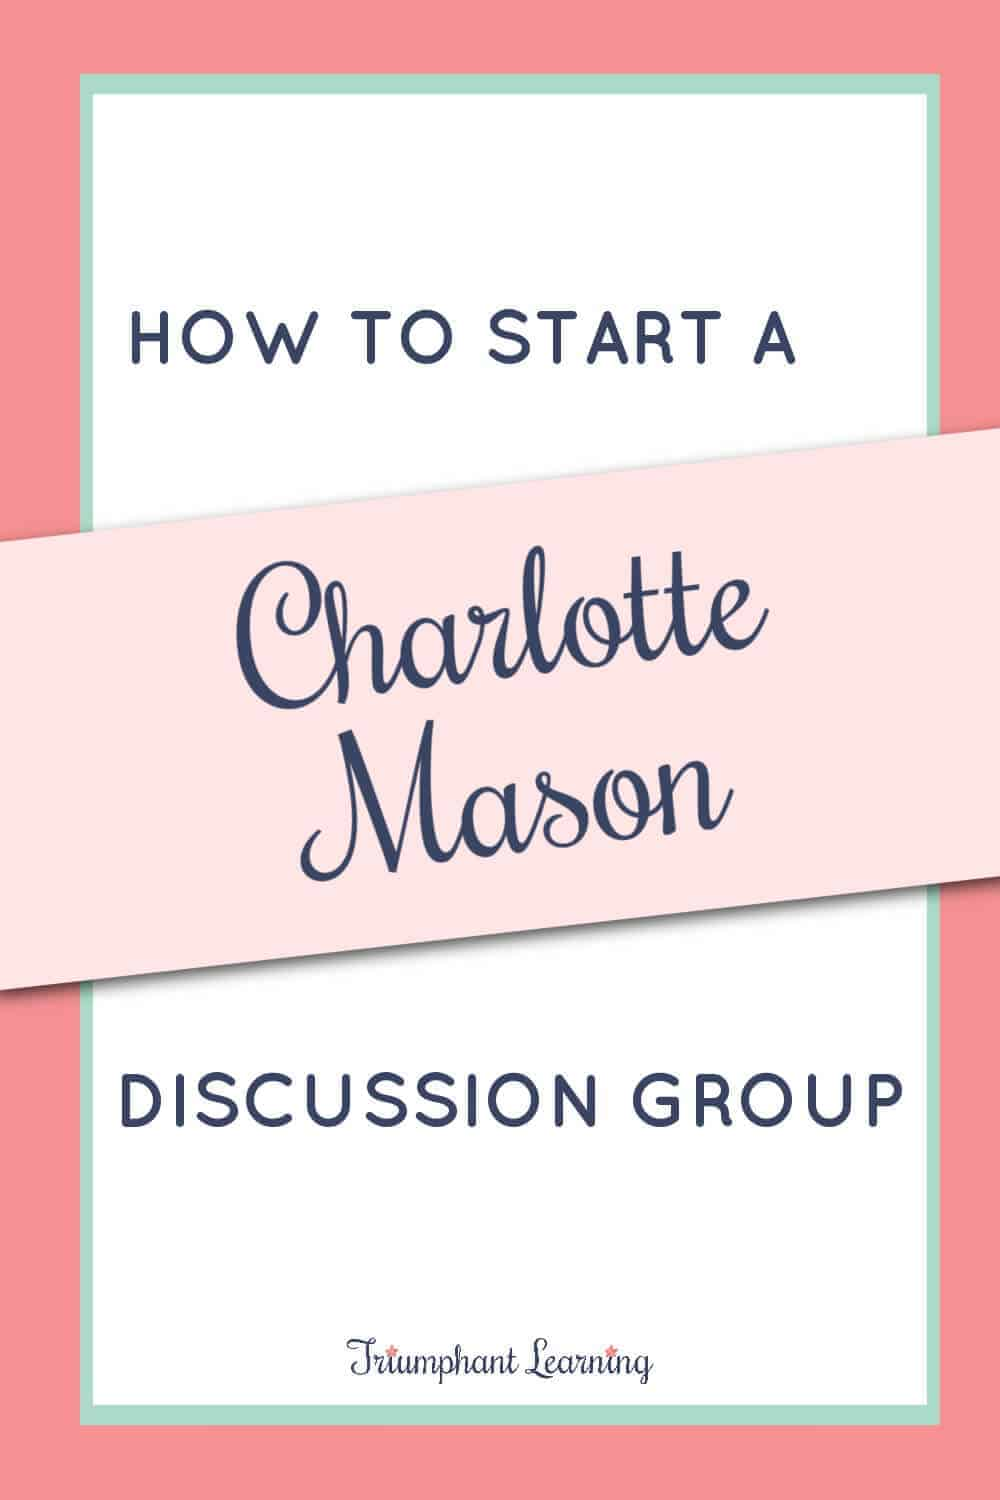 Learn how you can start a Charlotte Mason Discussion Group to help encourage and equip you to implement her philosophy in your homeschool. via @TriLearning